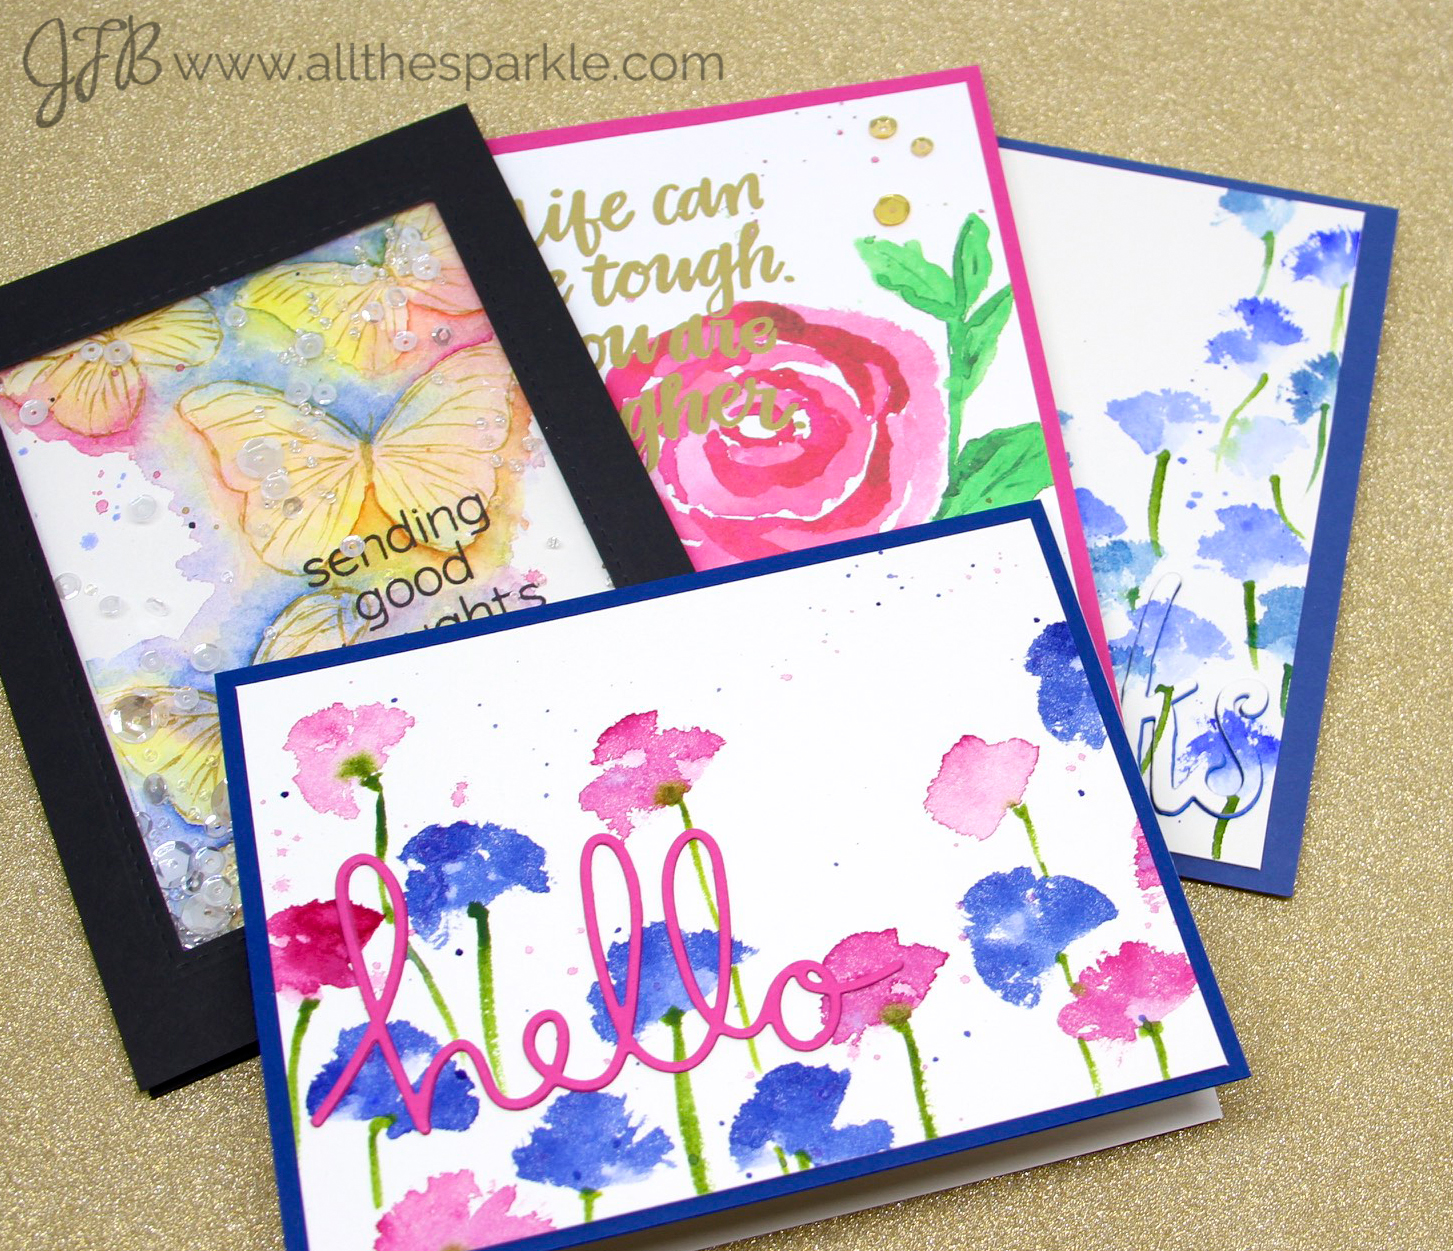 Online Card Classes: Watercolors for CardMakers – Intermediate Techniques Days 2 and 3